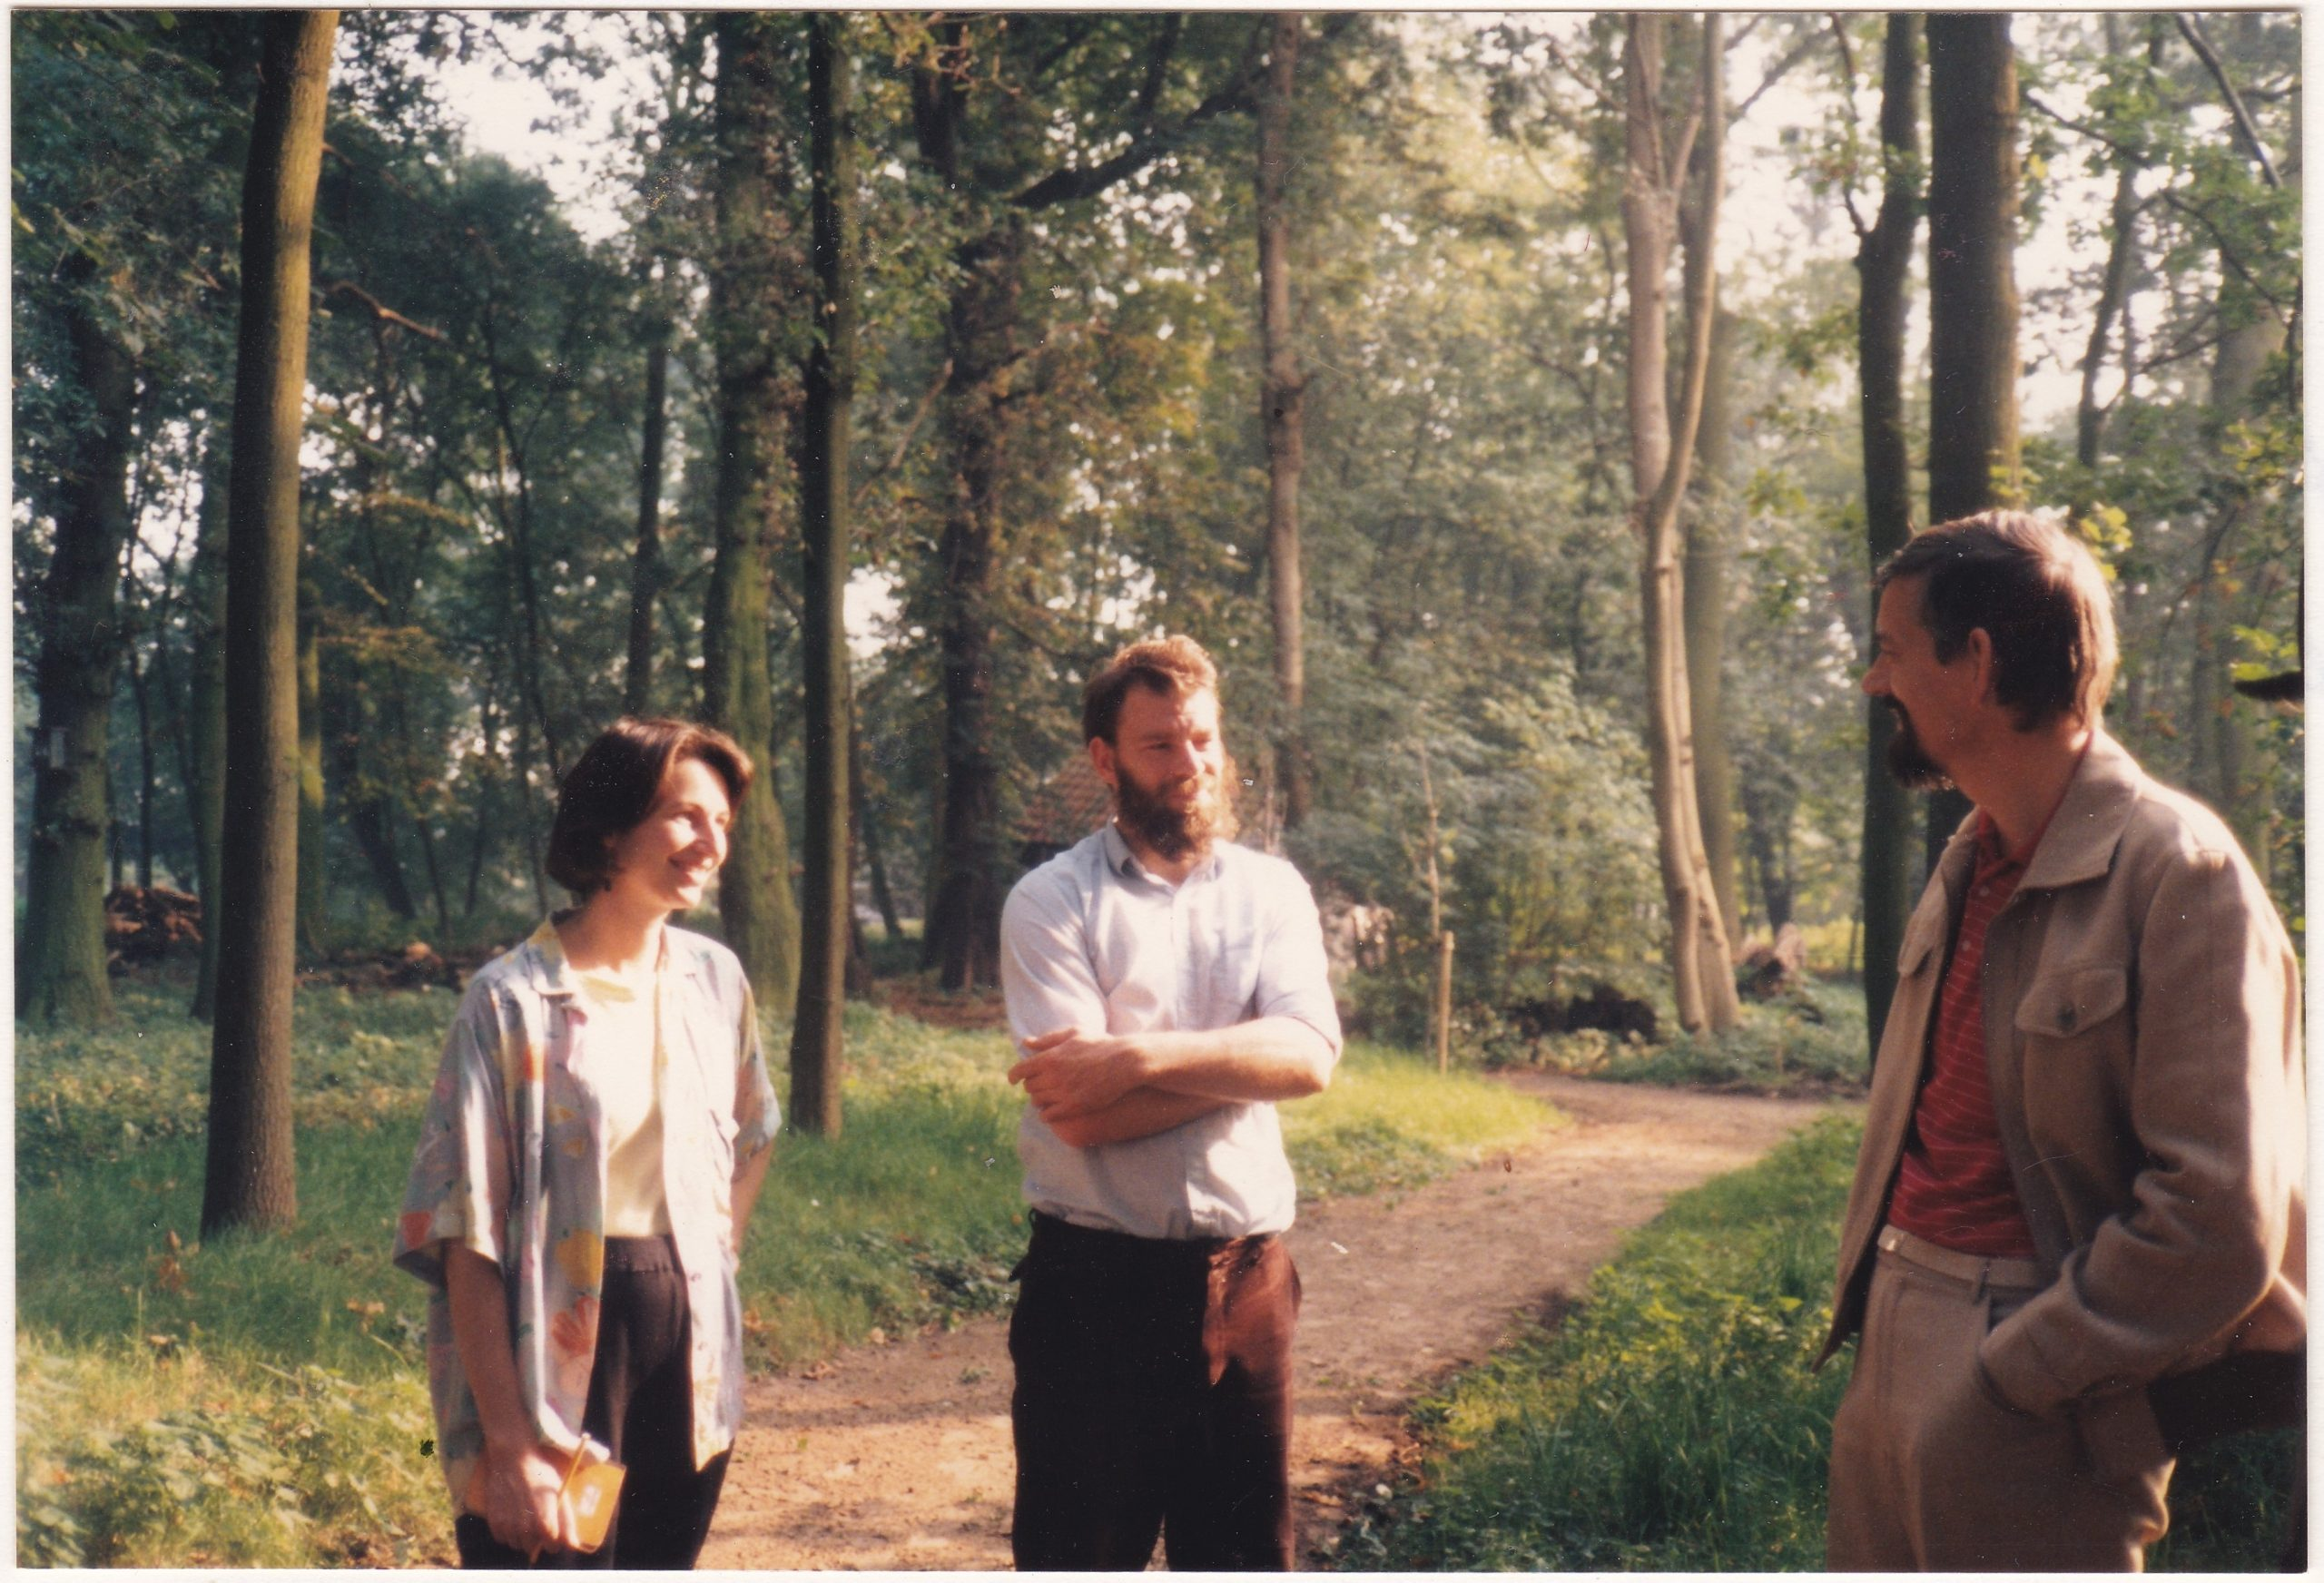 Finette visiting Wester-Amstel's grounds (1985)